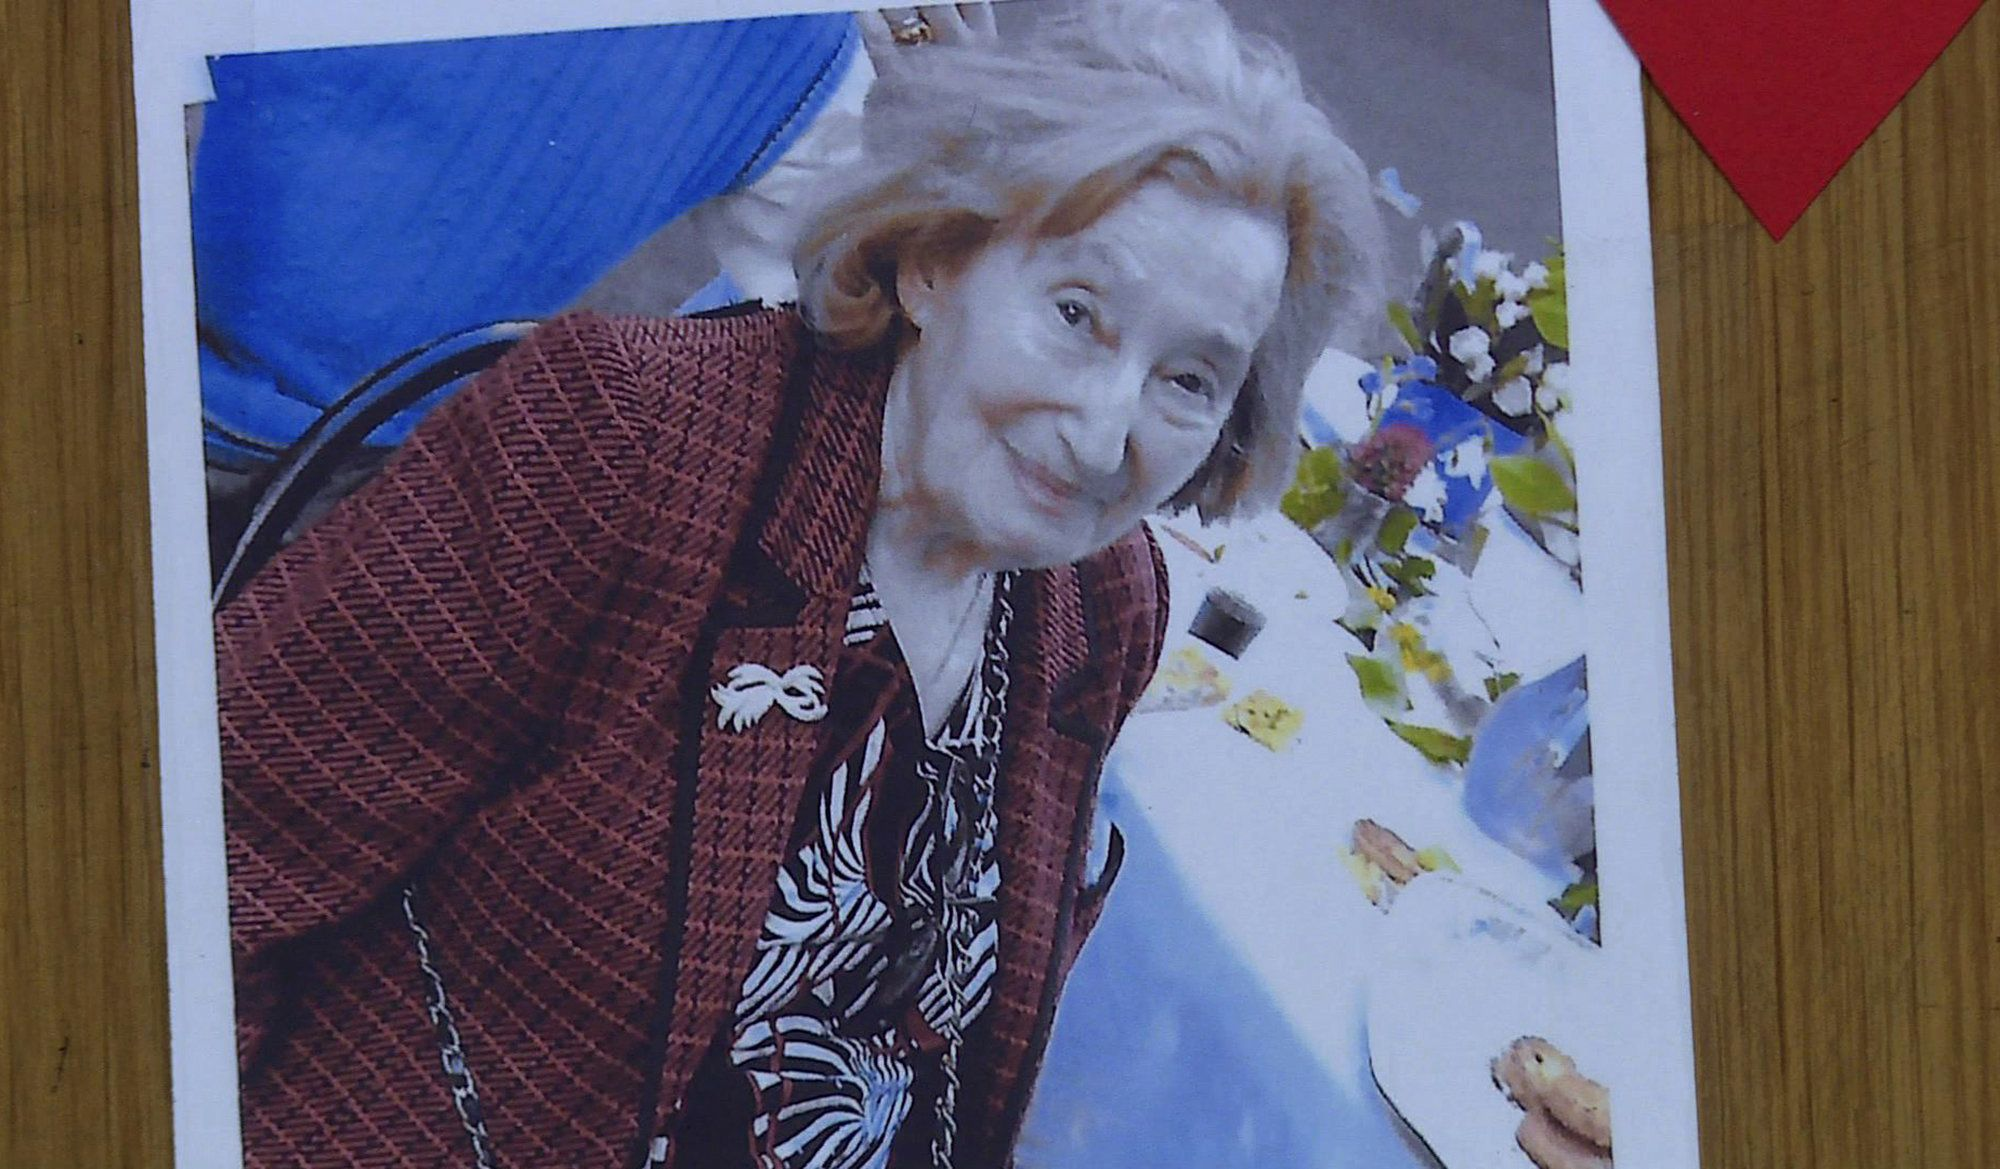 This AFP TV video frame grab shows a picture of Mireille Knoll posted on the door of her apartment in Paris on March 27, 2018 after she was found dead in her apartment on March 23 by firefighters called to extinguish a blaze. Two people have been charged with the murder of an 85-year-old French Jewish woman, who was stabbed and whose body was then set alight in a crime being treated as anti-Semitic, a judicial source said on March 27, 2018.  / AFP PHOTO / Laetitia PERON        (Photo credit should read LAETITIA PERON/AFP/Getty Images)